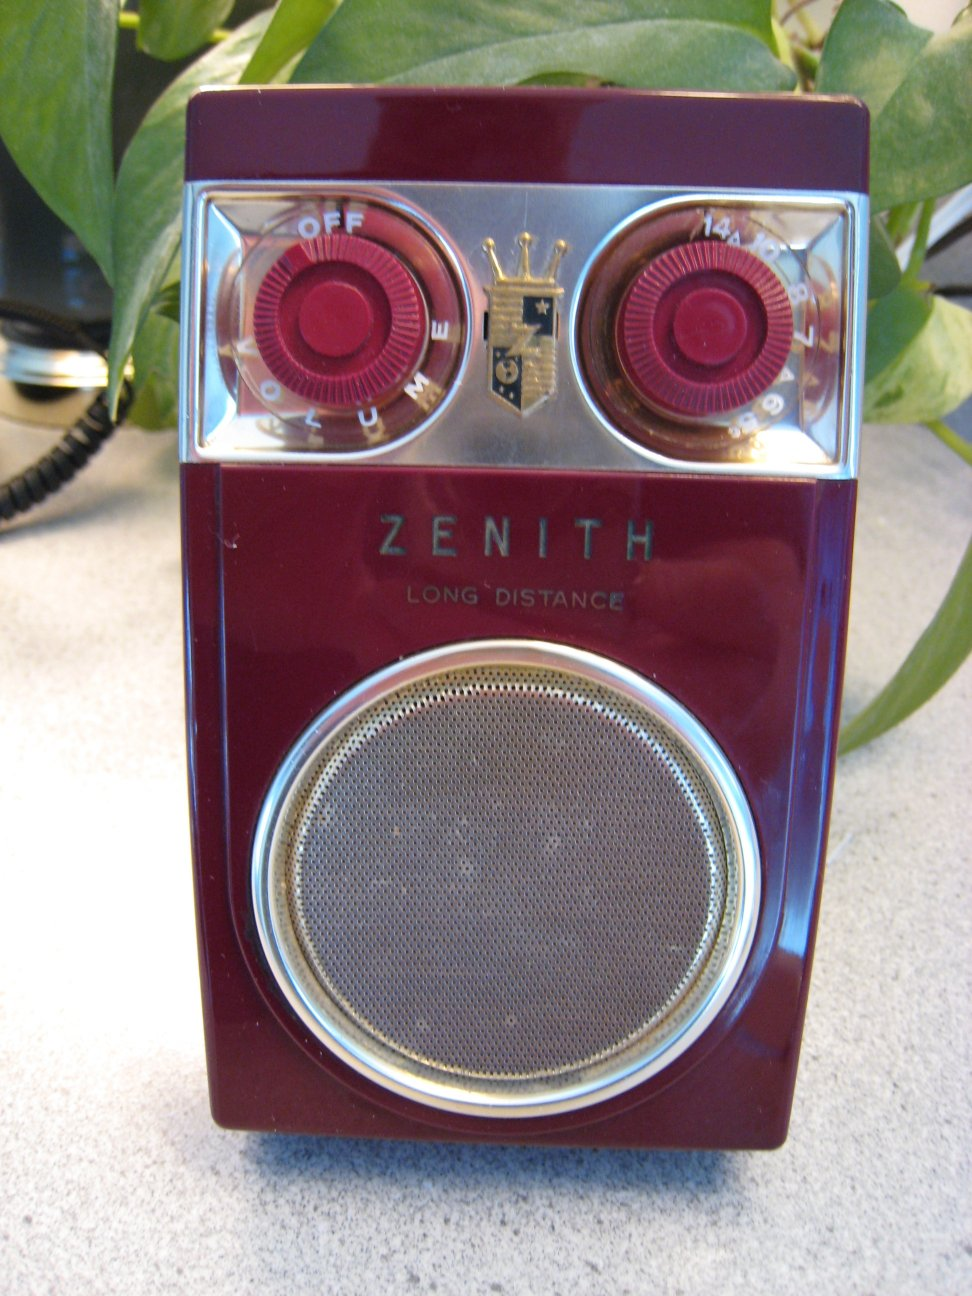 Zenith Royal 500 Series Tr Tor Radios The Owl Eye. Wiring. Zenith Transistor Radio Schematics At Scoala.co